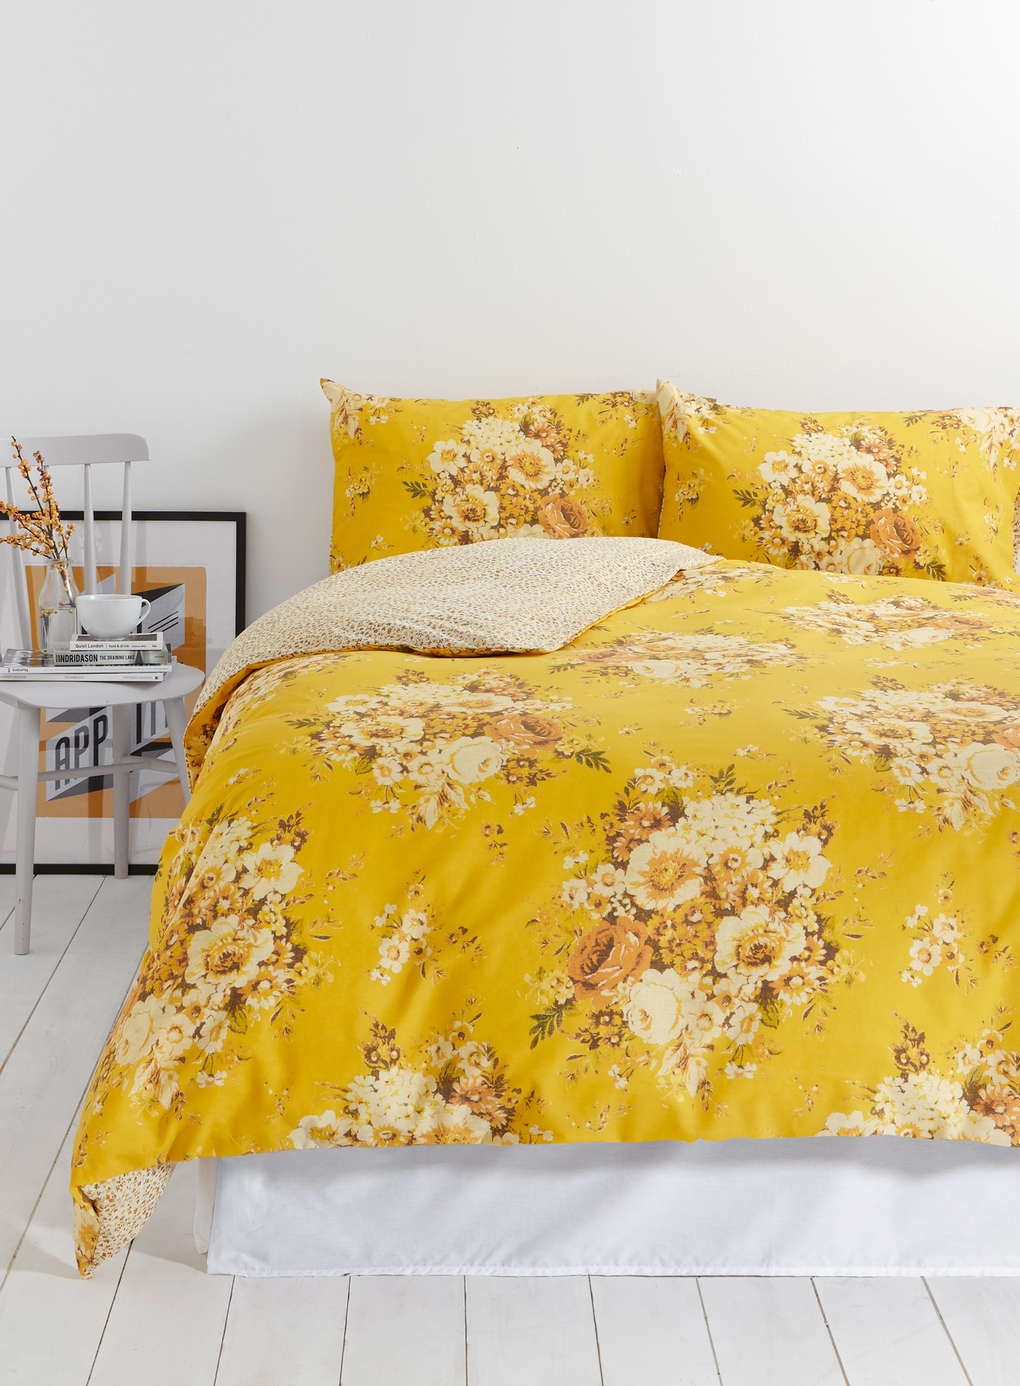 Yellow Is A Sunny And Inspiring Color Find More Inspirations At Http Insplosion Com Inspirations Yellow Bedding Yellow Bedroom Home